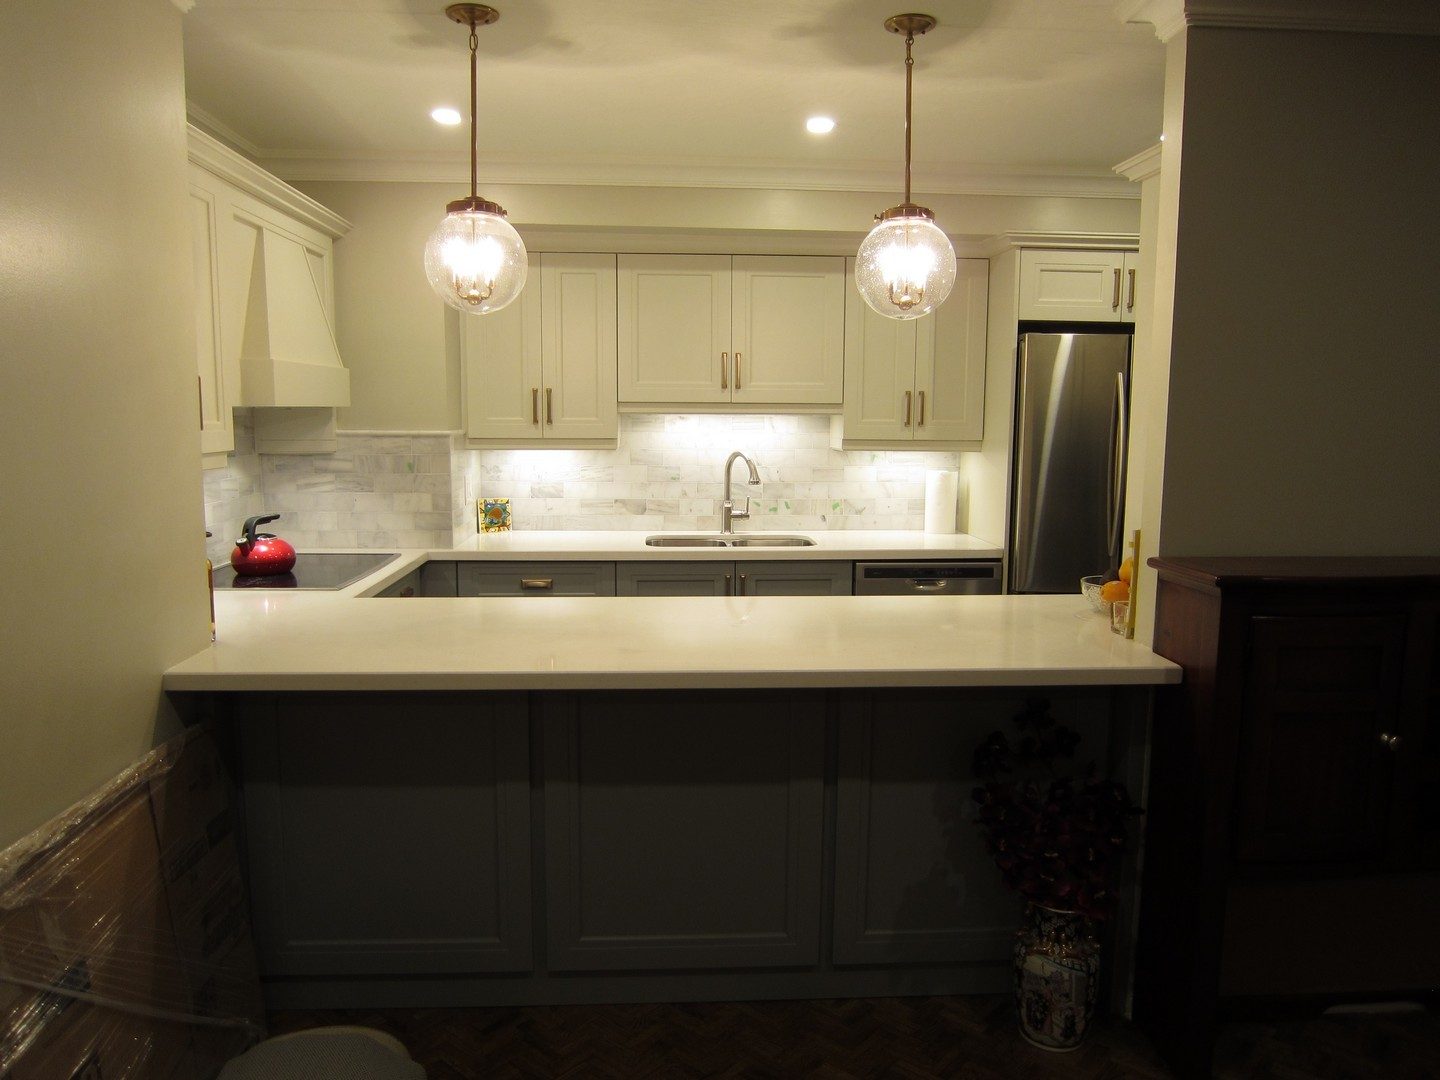 kitchen_00028